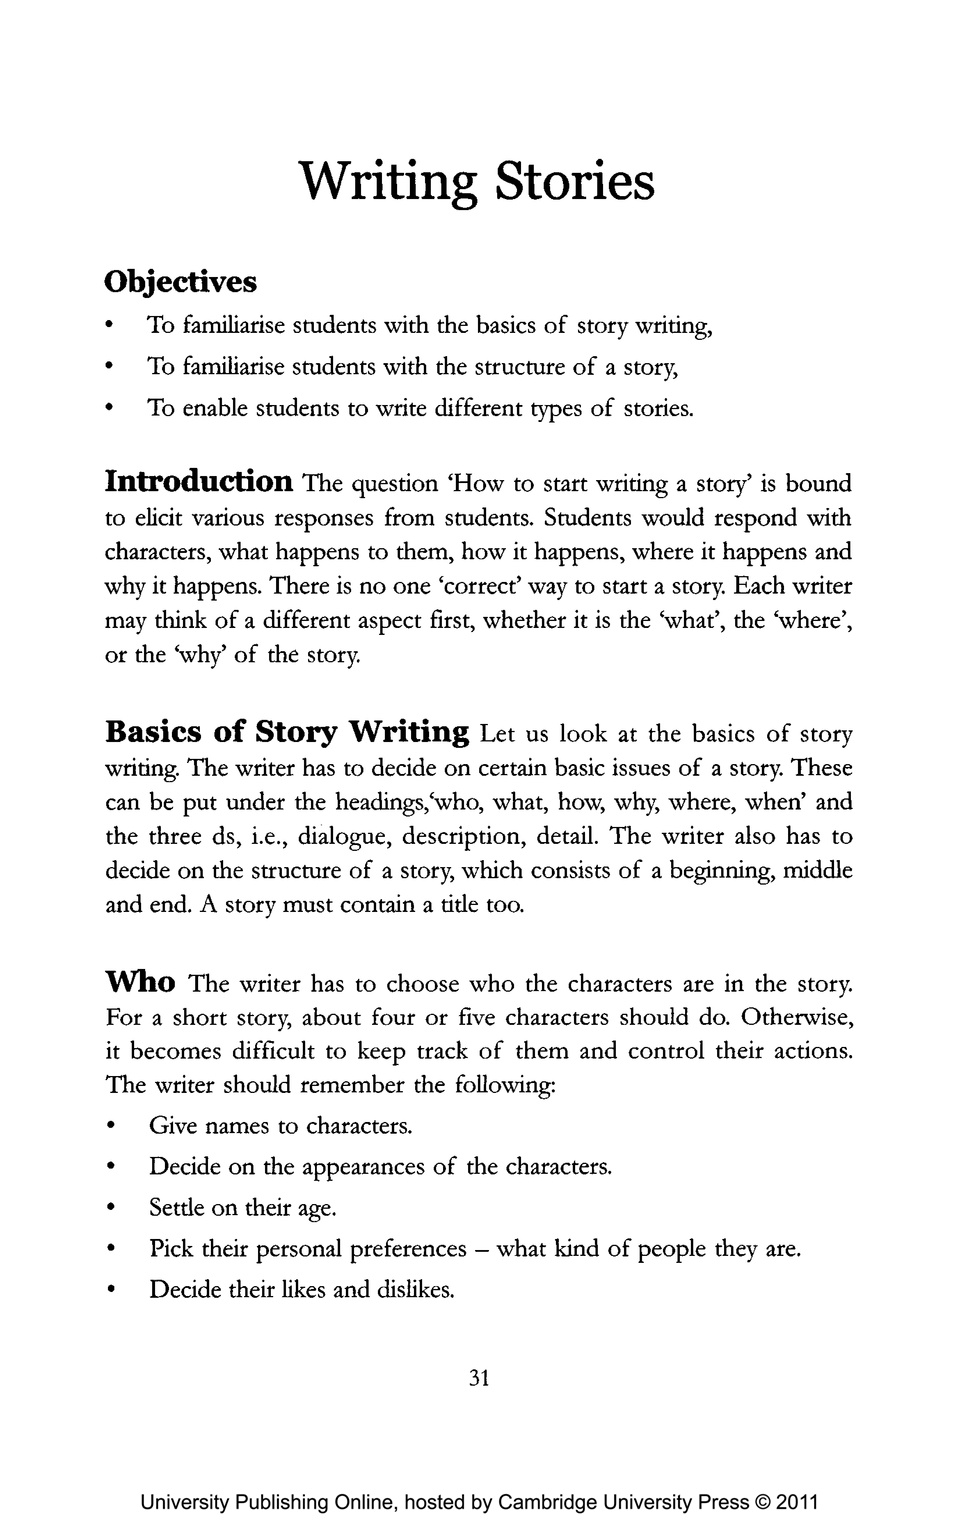 015 Short Stories In Essays Essay Example Dialogue Write Story How To Sample Research Paper 9788175968714c2 Abstrac Comparison An Introduction For Title Good Conclusion The Of Impressive Analysis Examples And One Act Plays Fiction Full